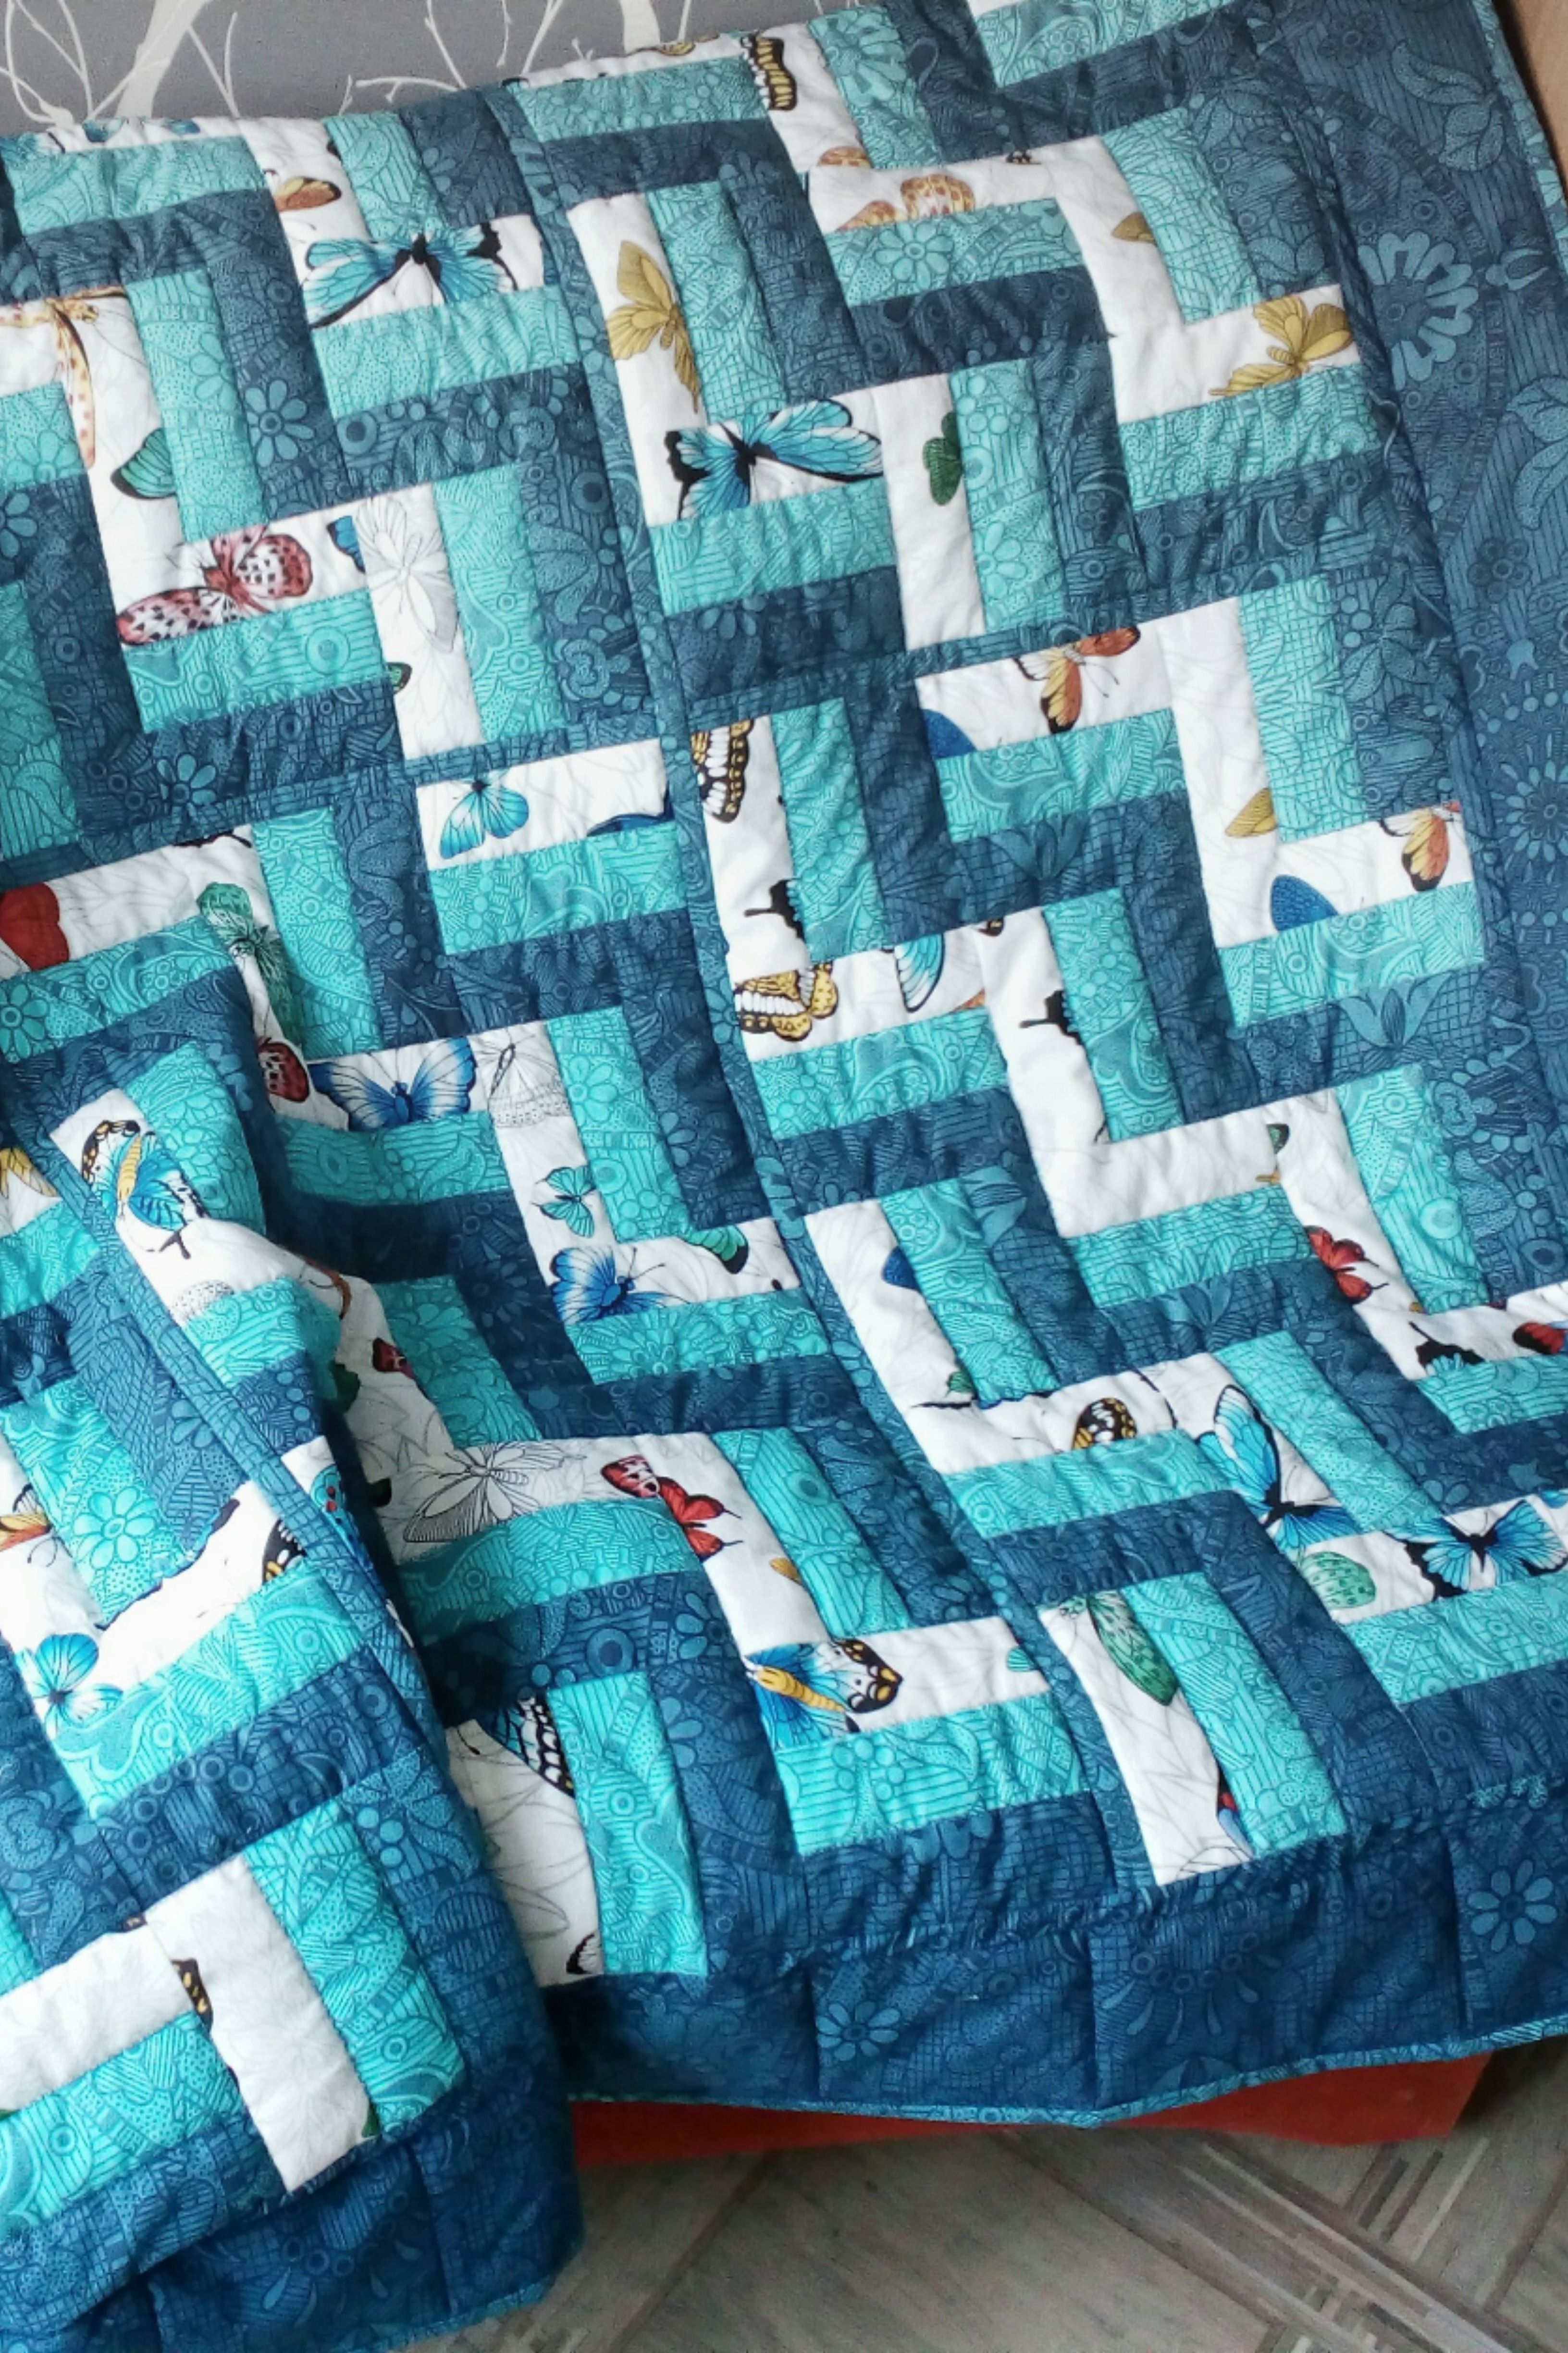 Homemade Quilt For Sale King Size Quilt For Sale Queen Size Etsy Homemade Quilts For Sale Homemade Quilts Patchwork Quilts For Sale Quilts for sale king size